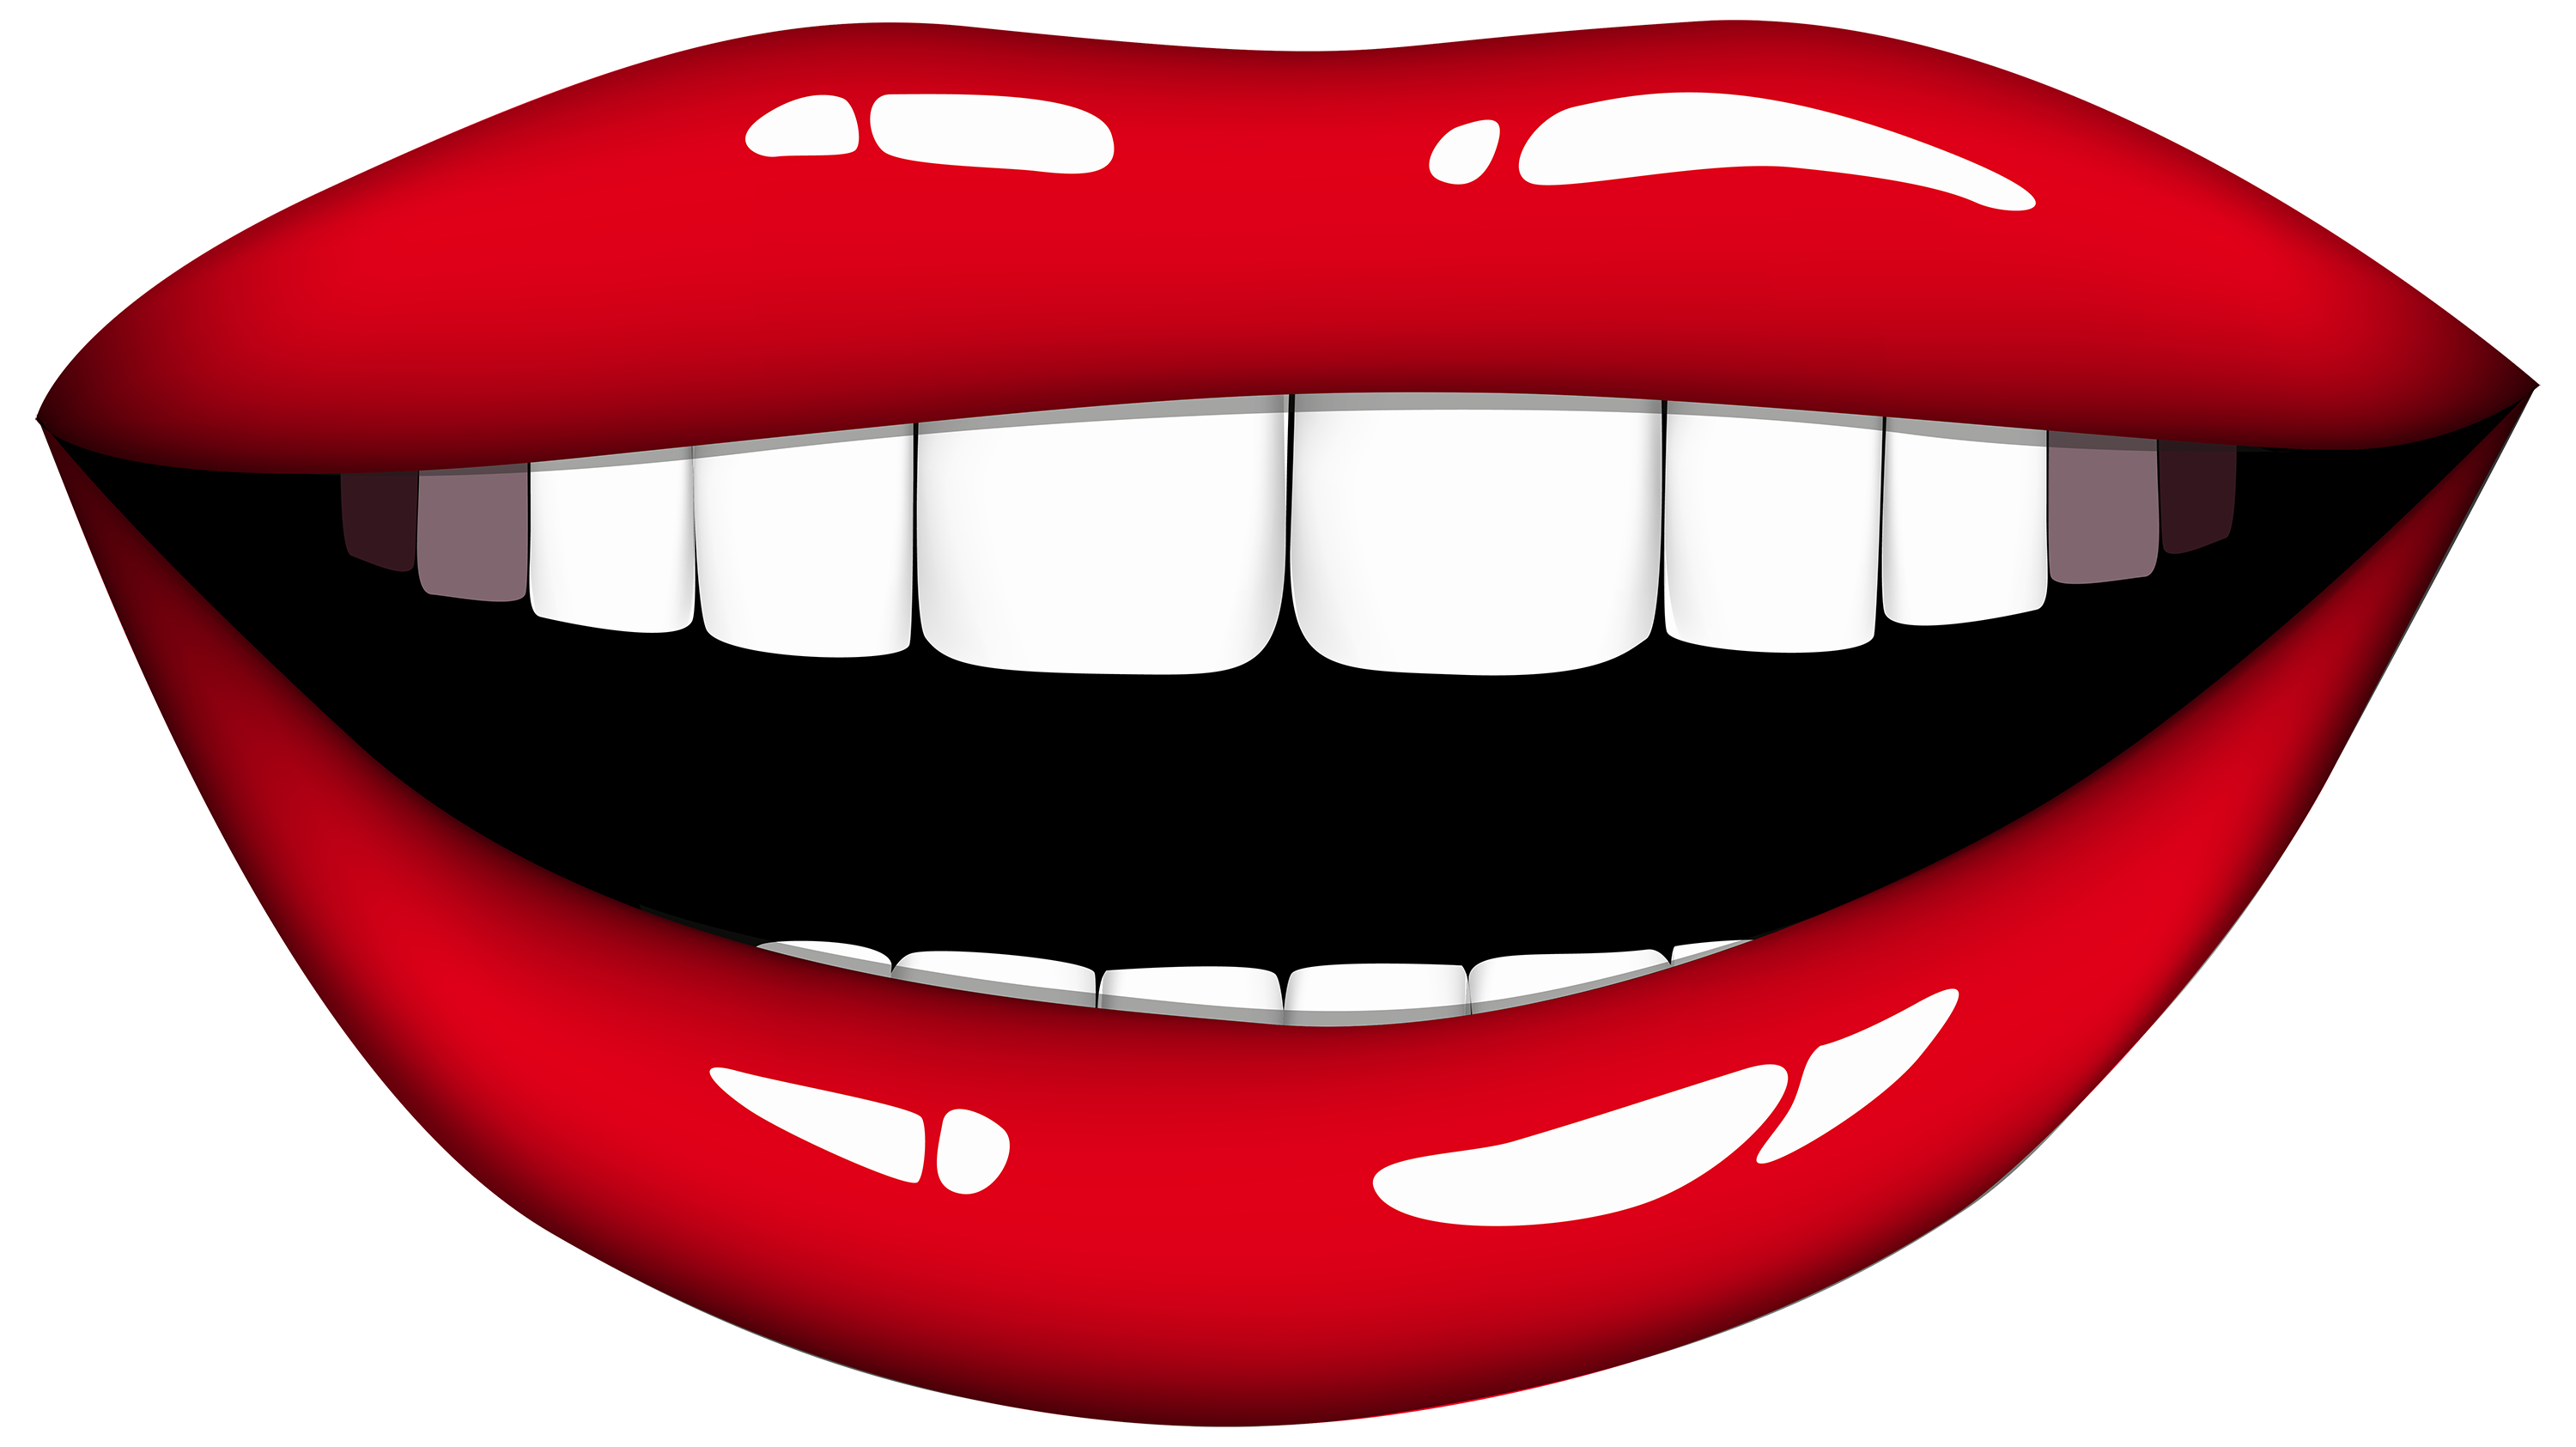 Smile Mouth Clipart Black And White Free-Smile mouth clipart black and white free clipart image-17